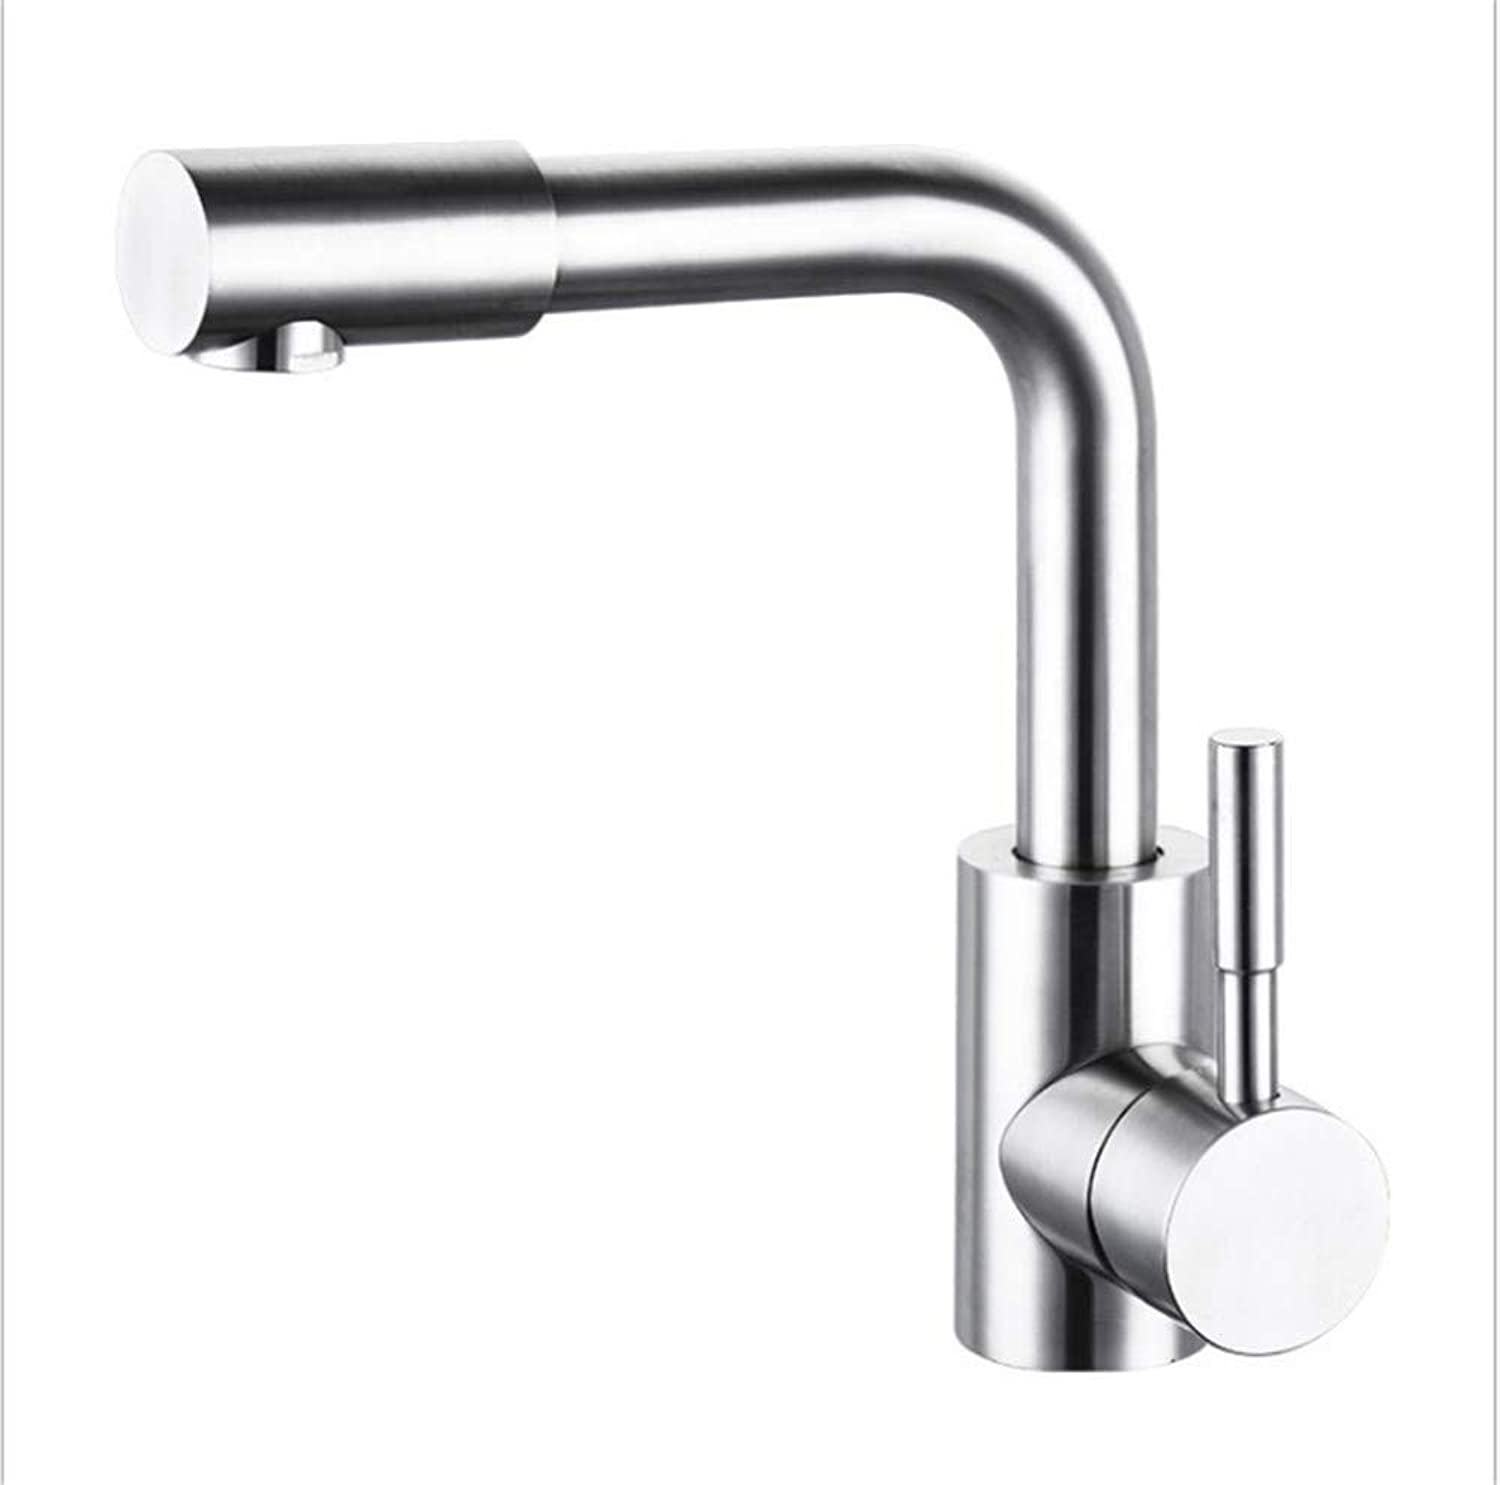 Water Tapdrinking Designer Archfaucet Stainless Steel Basin Faucet Wash Basin Faucet